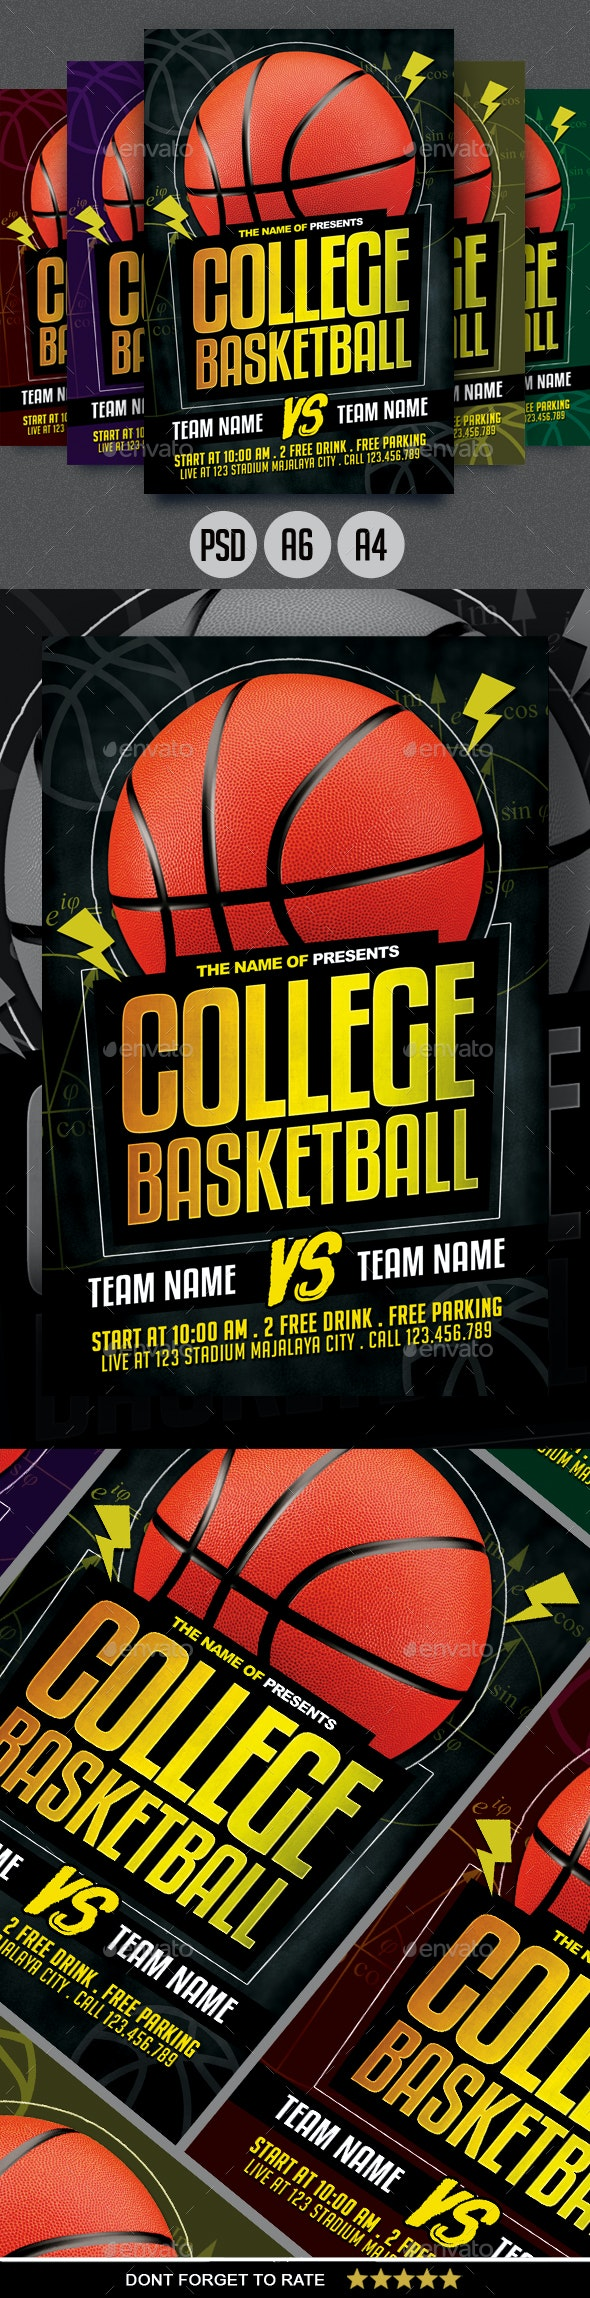 College Basketball Flyer - Sports Events